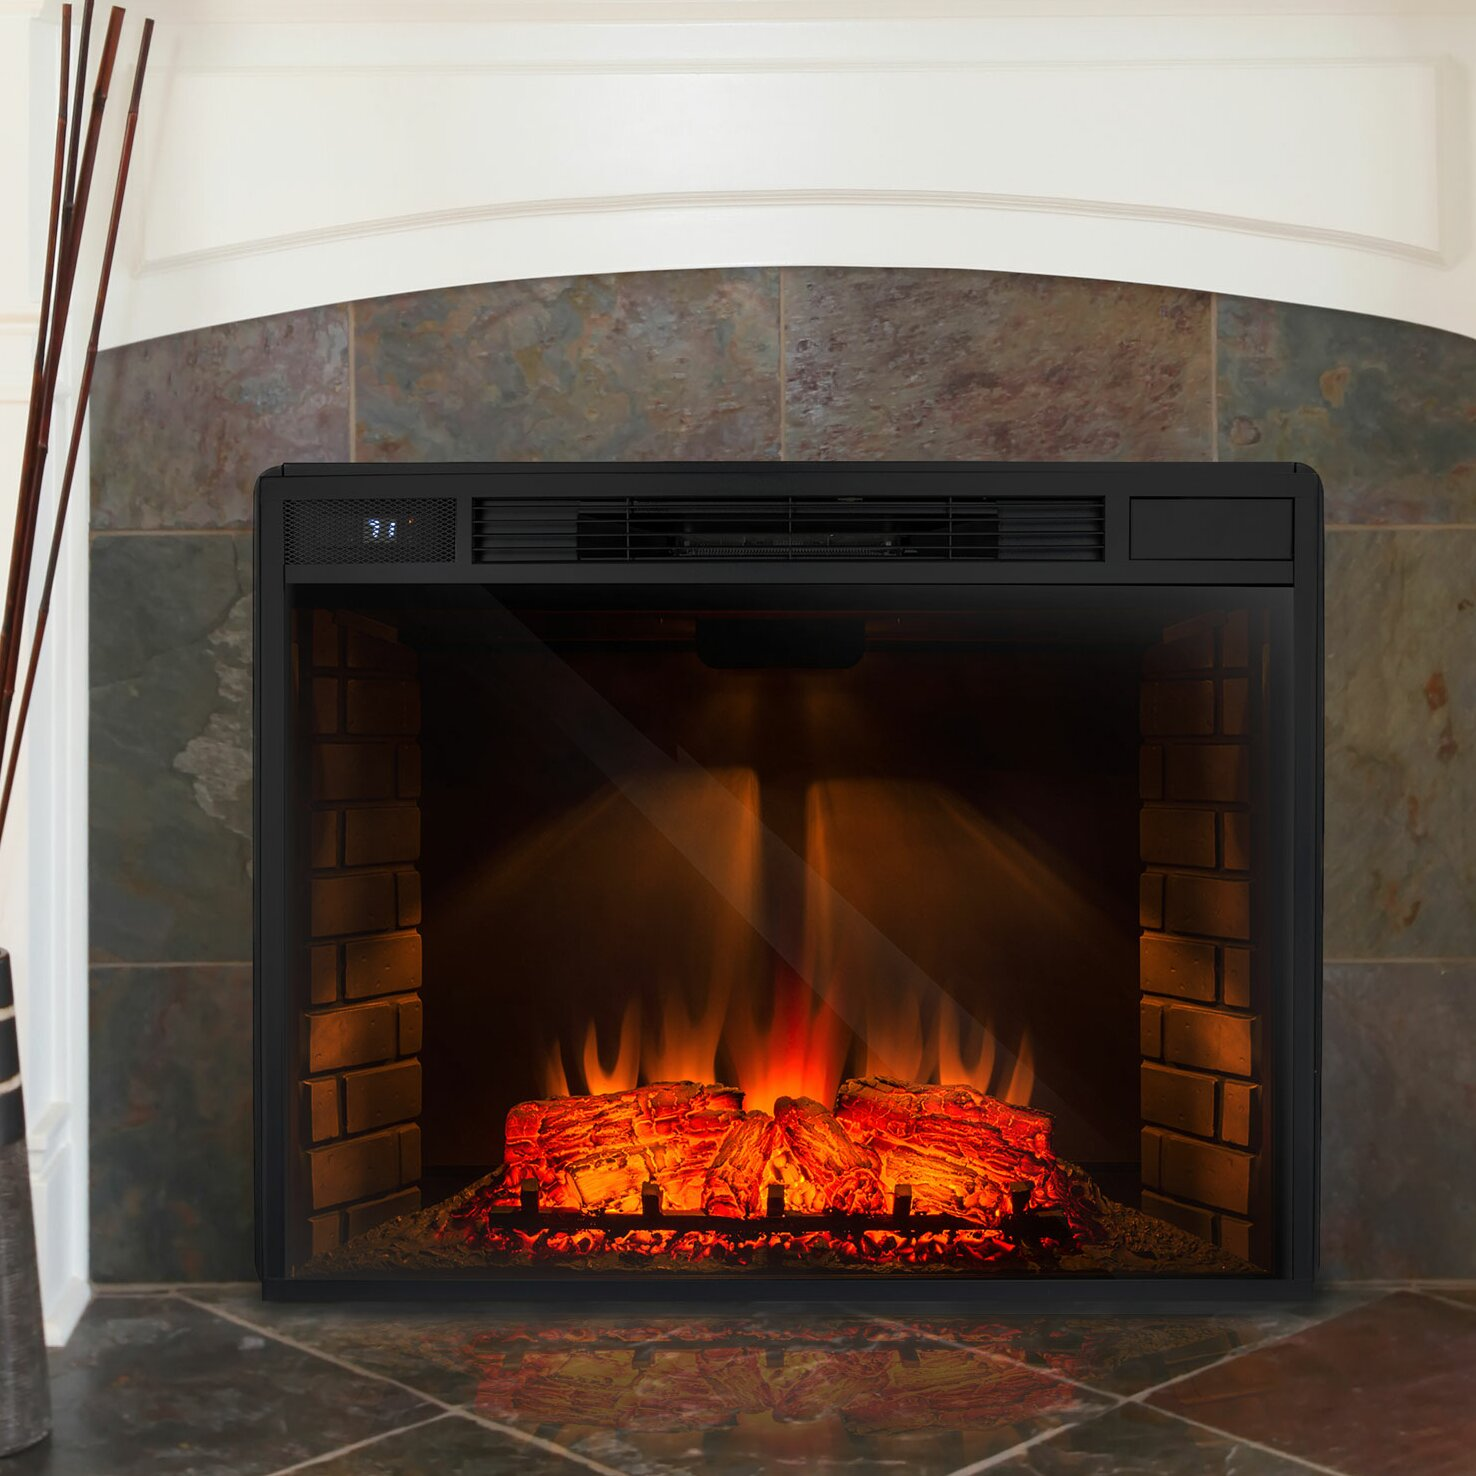 AKDY Freestanding 3D Logs Flame Electric Fireplace Insert - AKDY Freestanding 3D Logs Flame Electric Fireplace Insert